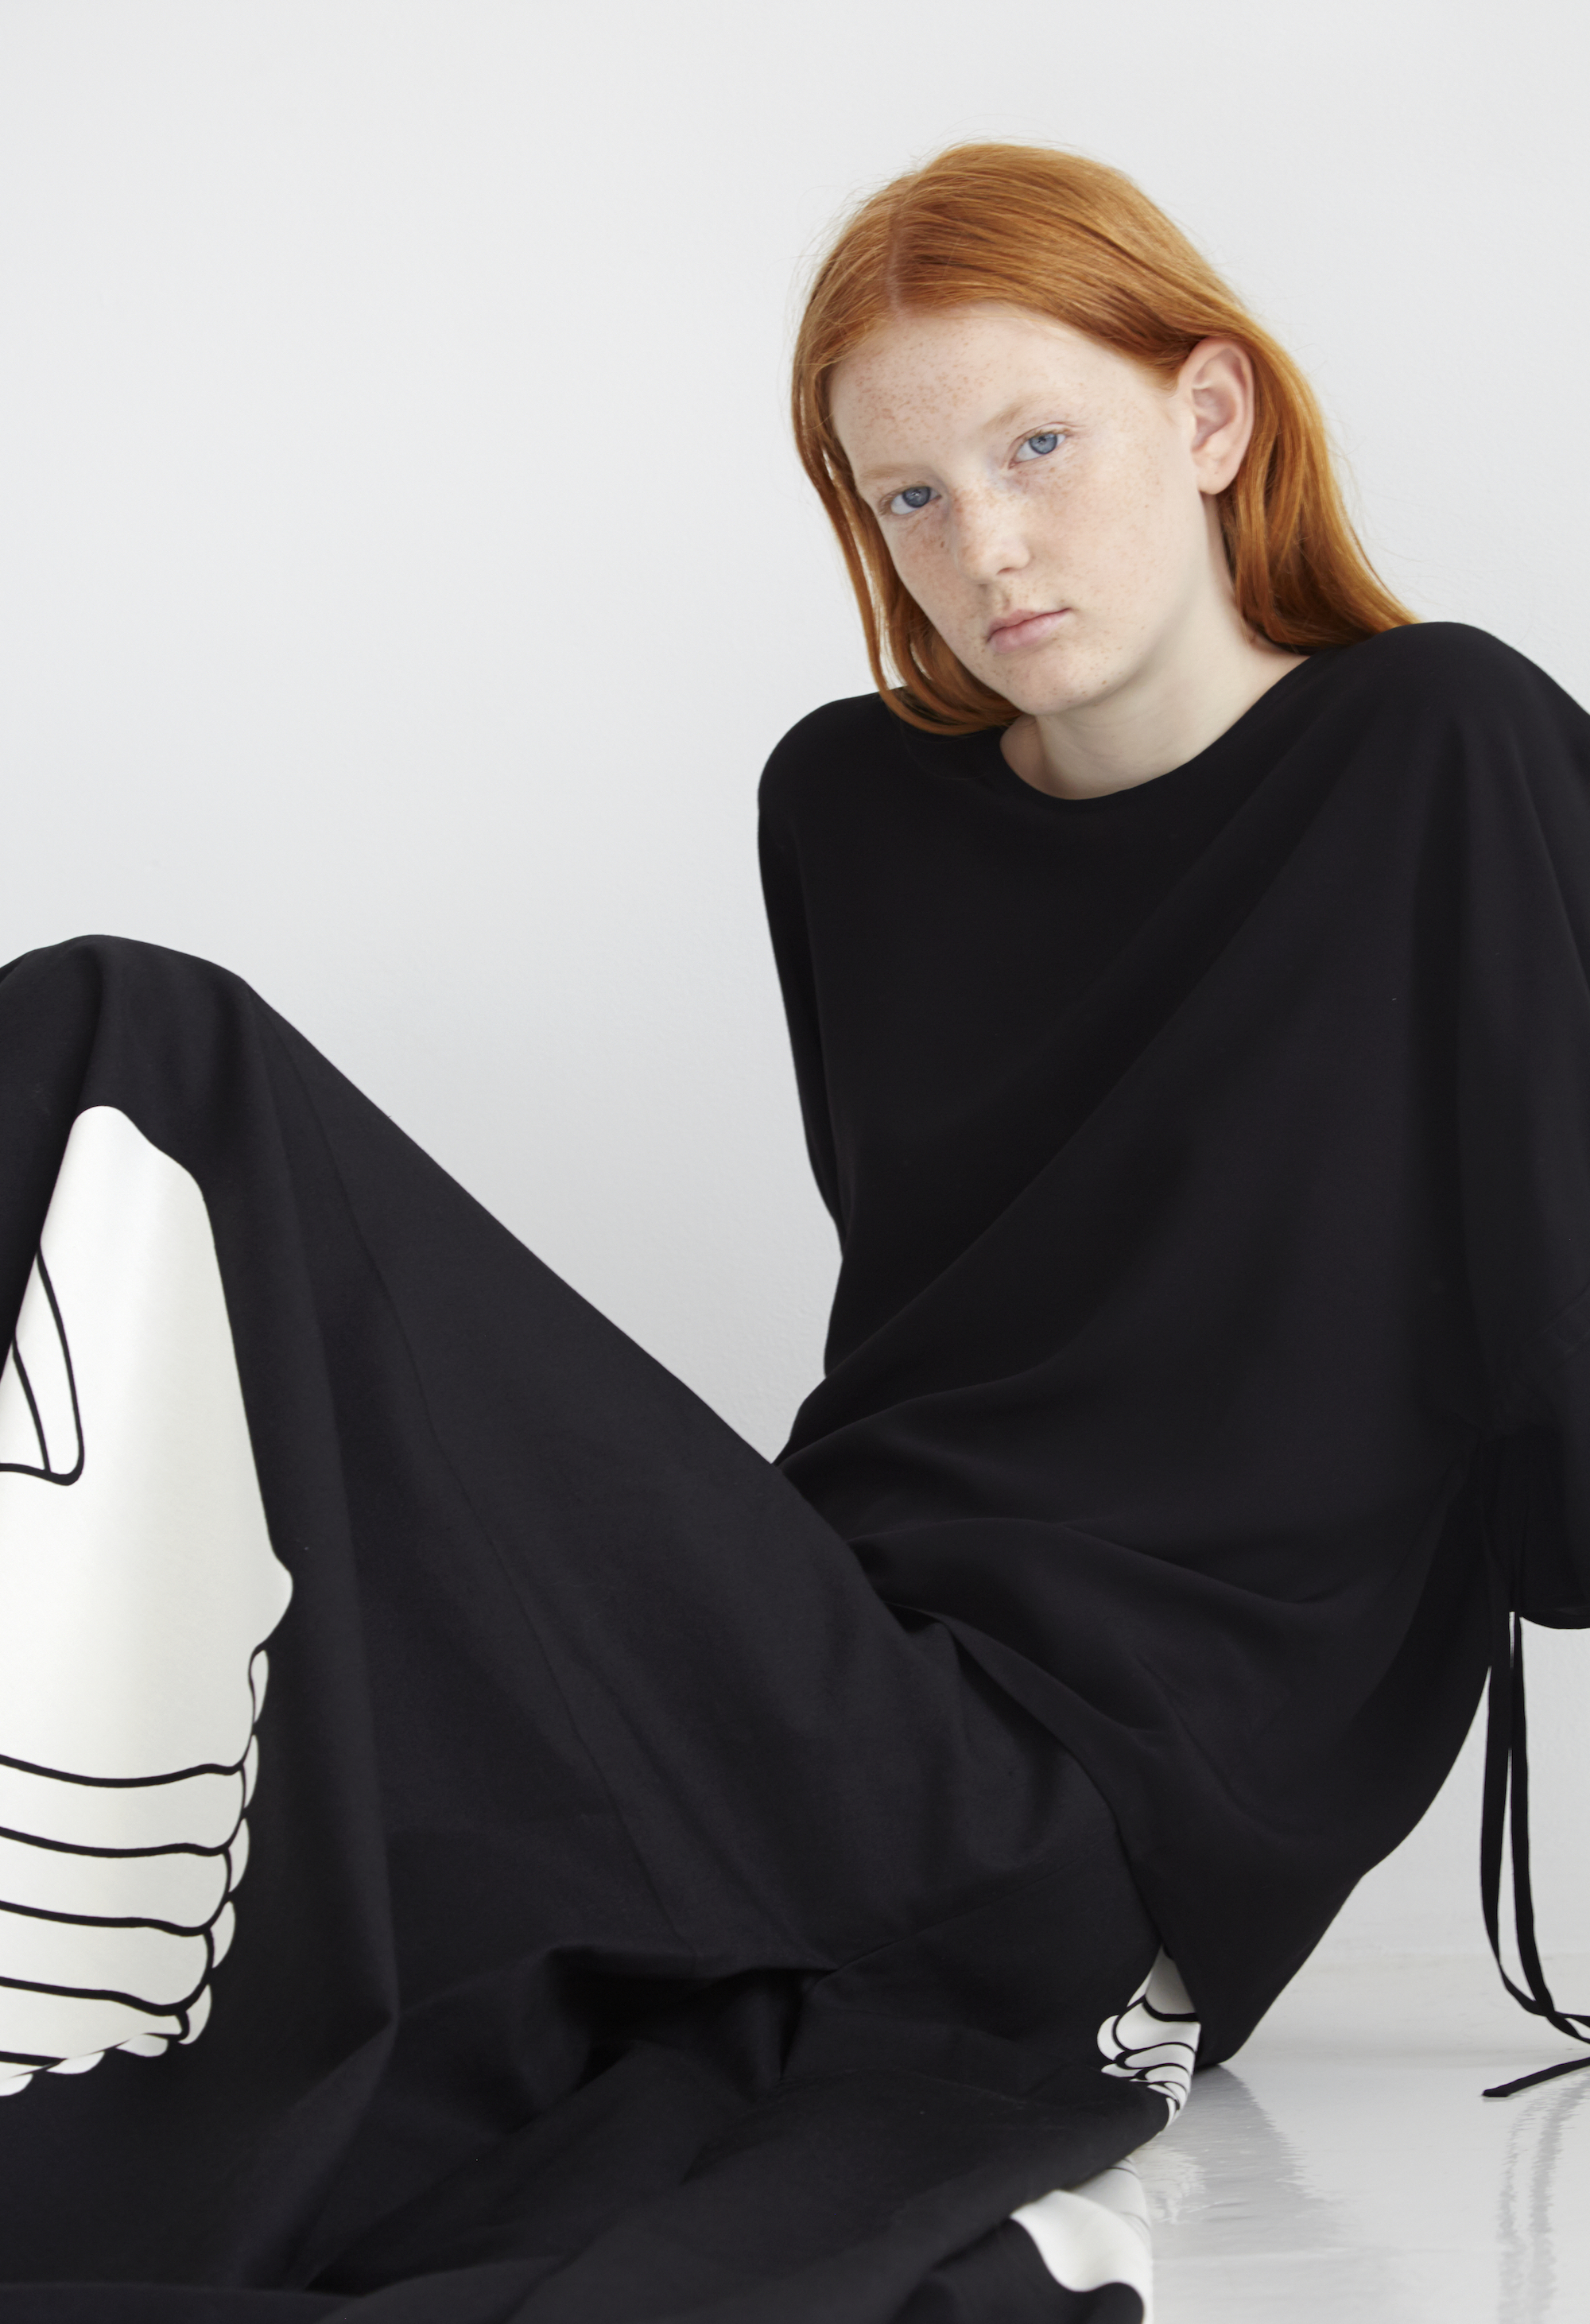 A lookbook photo from the Marimekko collection, photo courtesy of Marimekko